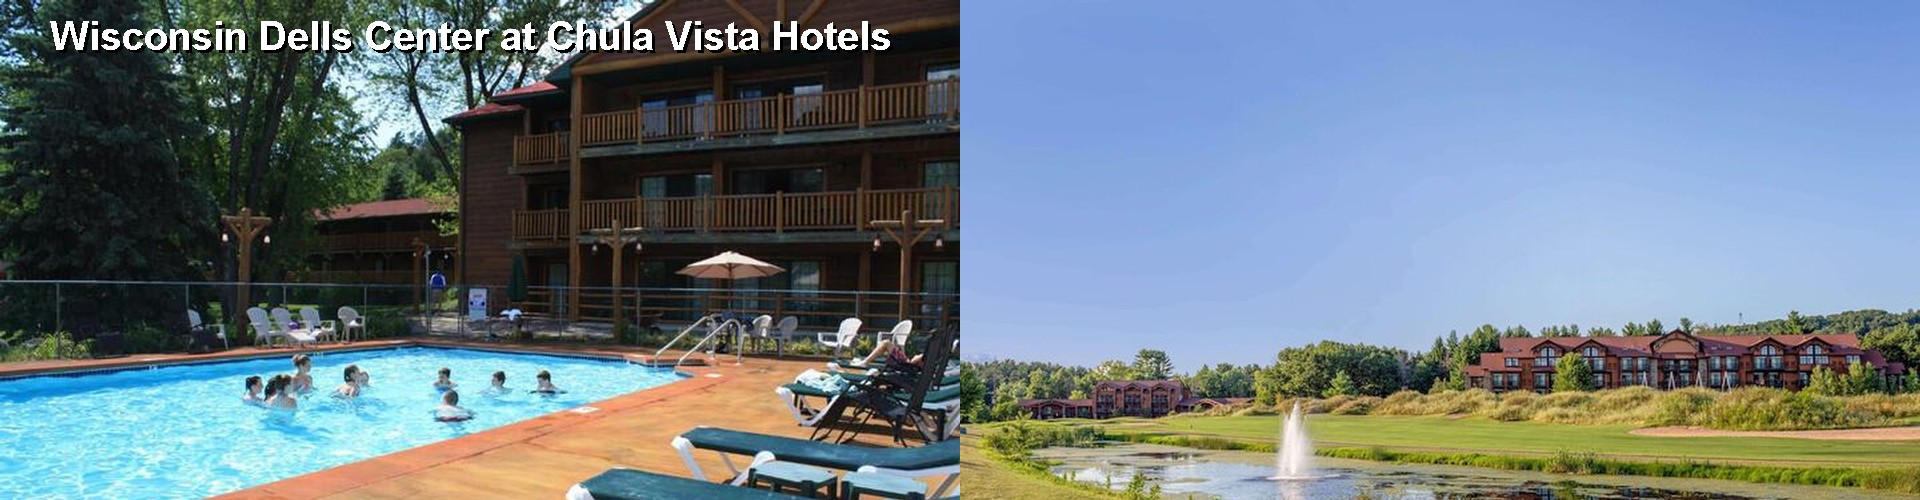 3 Best Hotels near Wisconsin Dells Center at Chula Vista